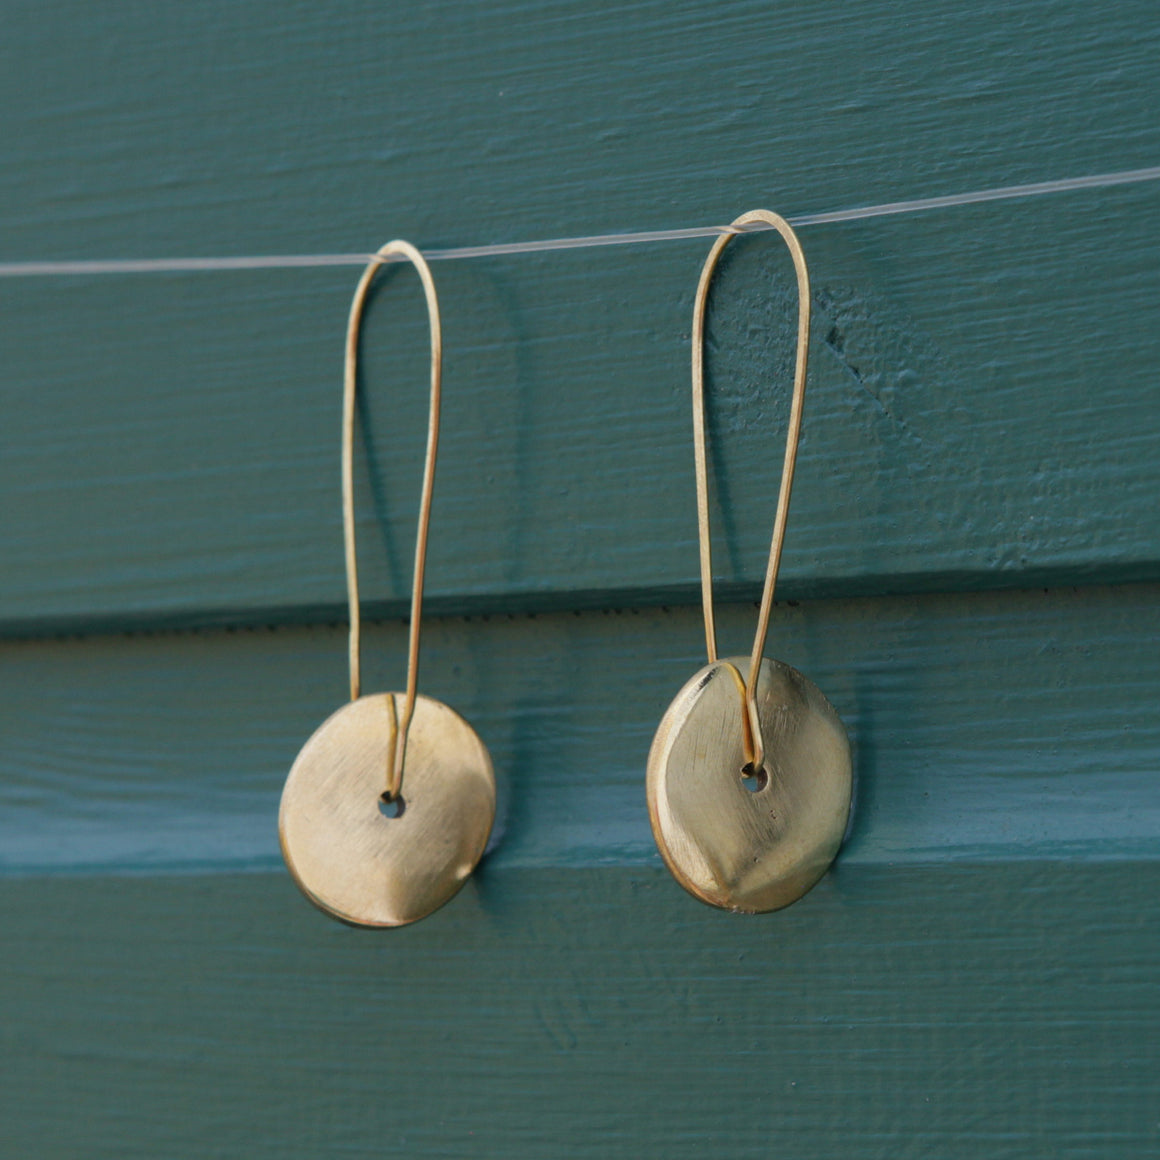 Artisans & Adventurers recycled brass earrings. Ethical and sustainable jewellery made in Kenya